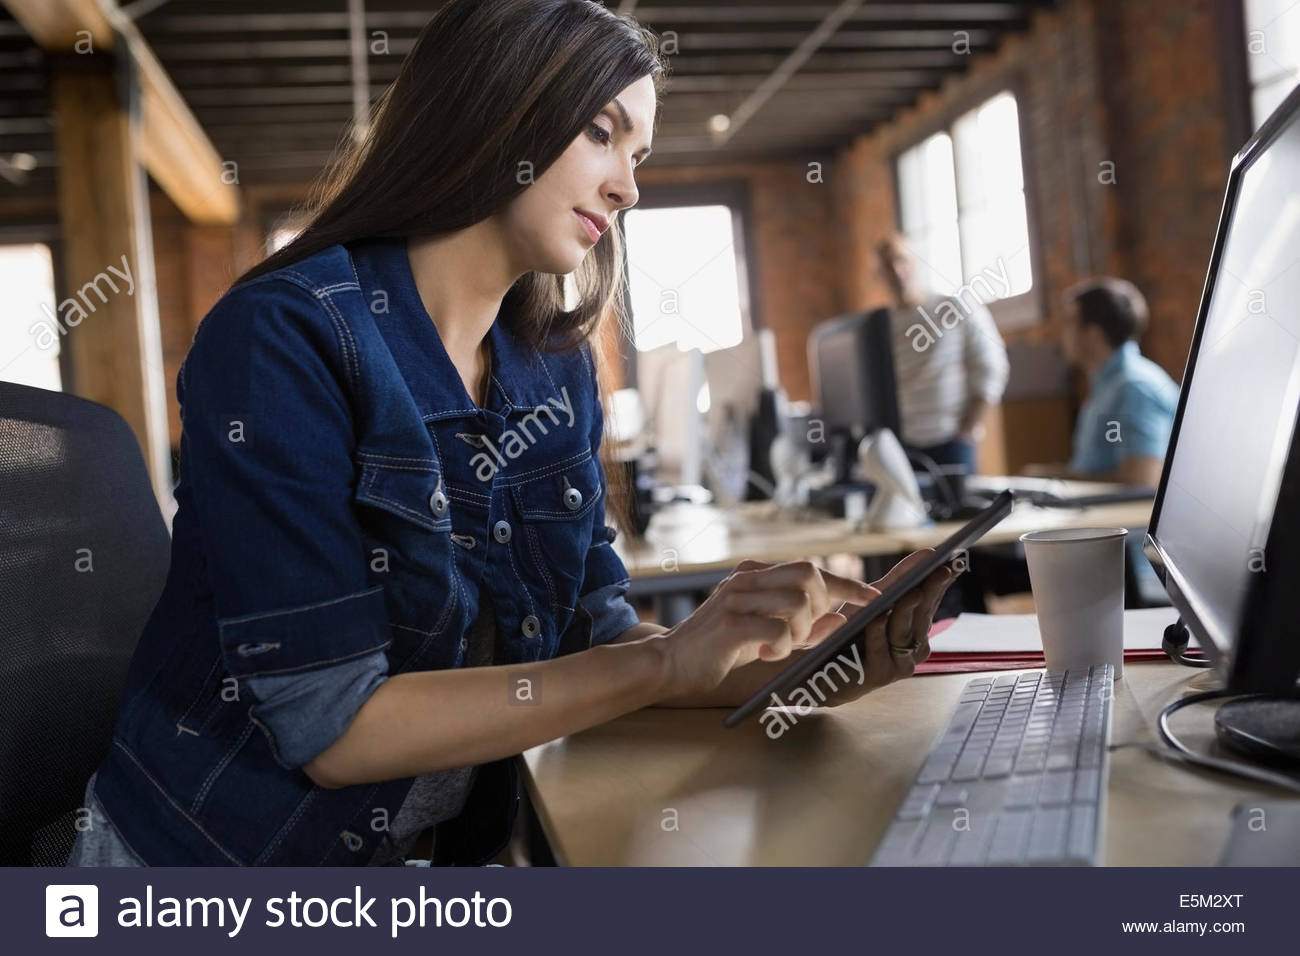 Businesswoman using digital tablet at desk in office - Stock Image